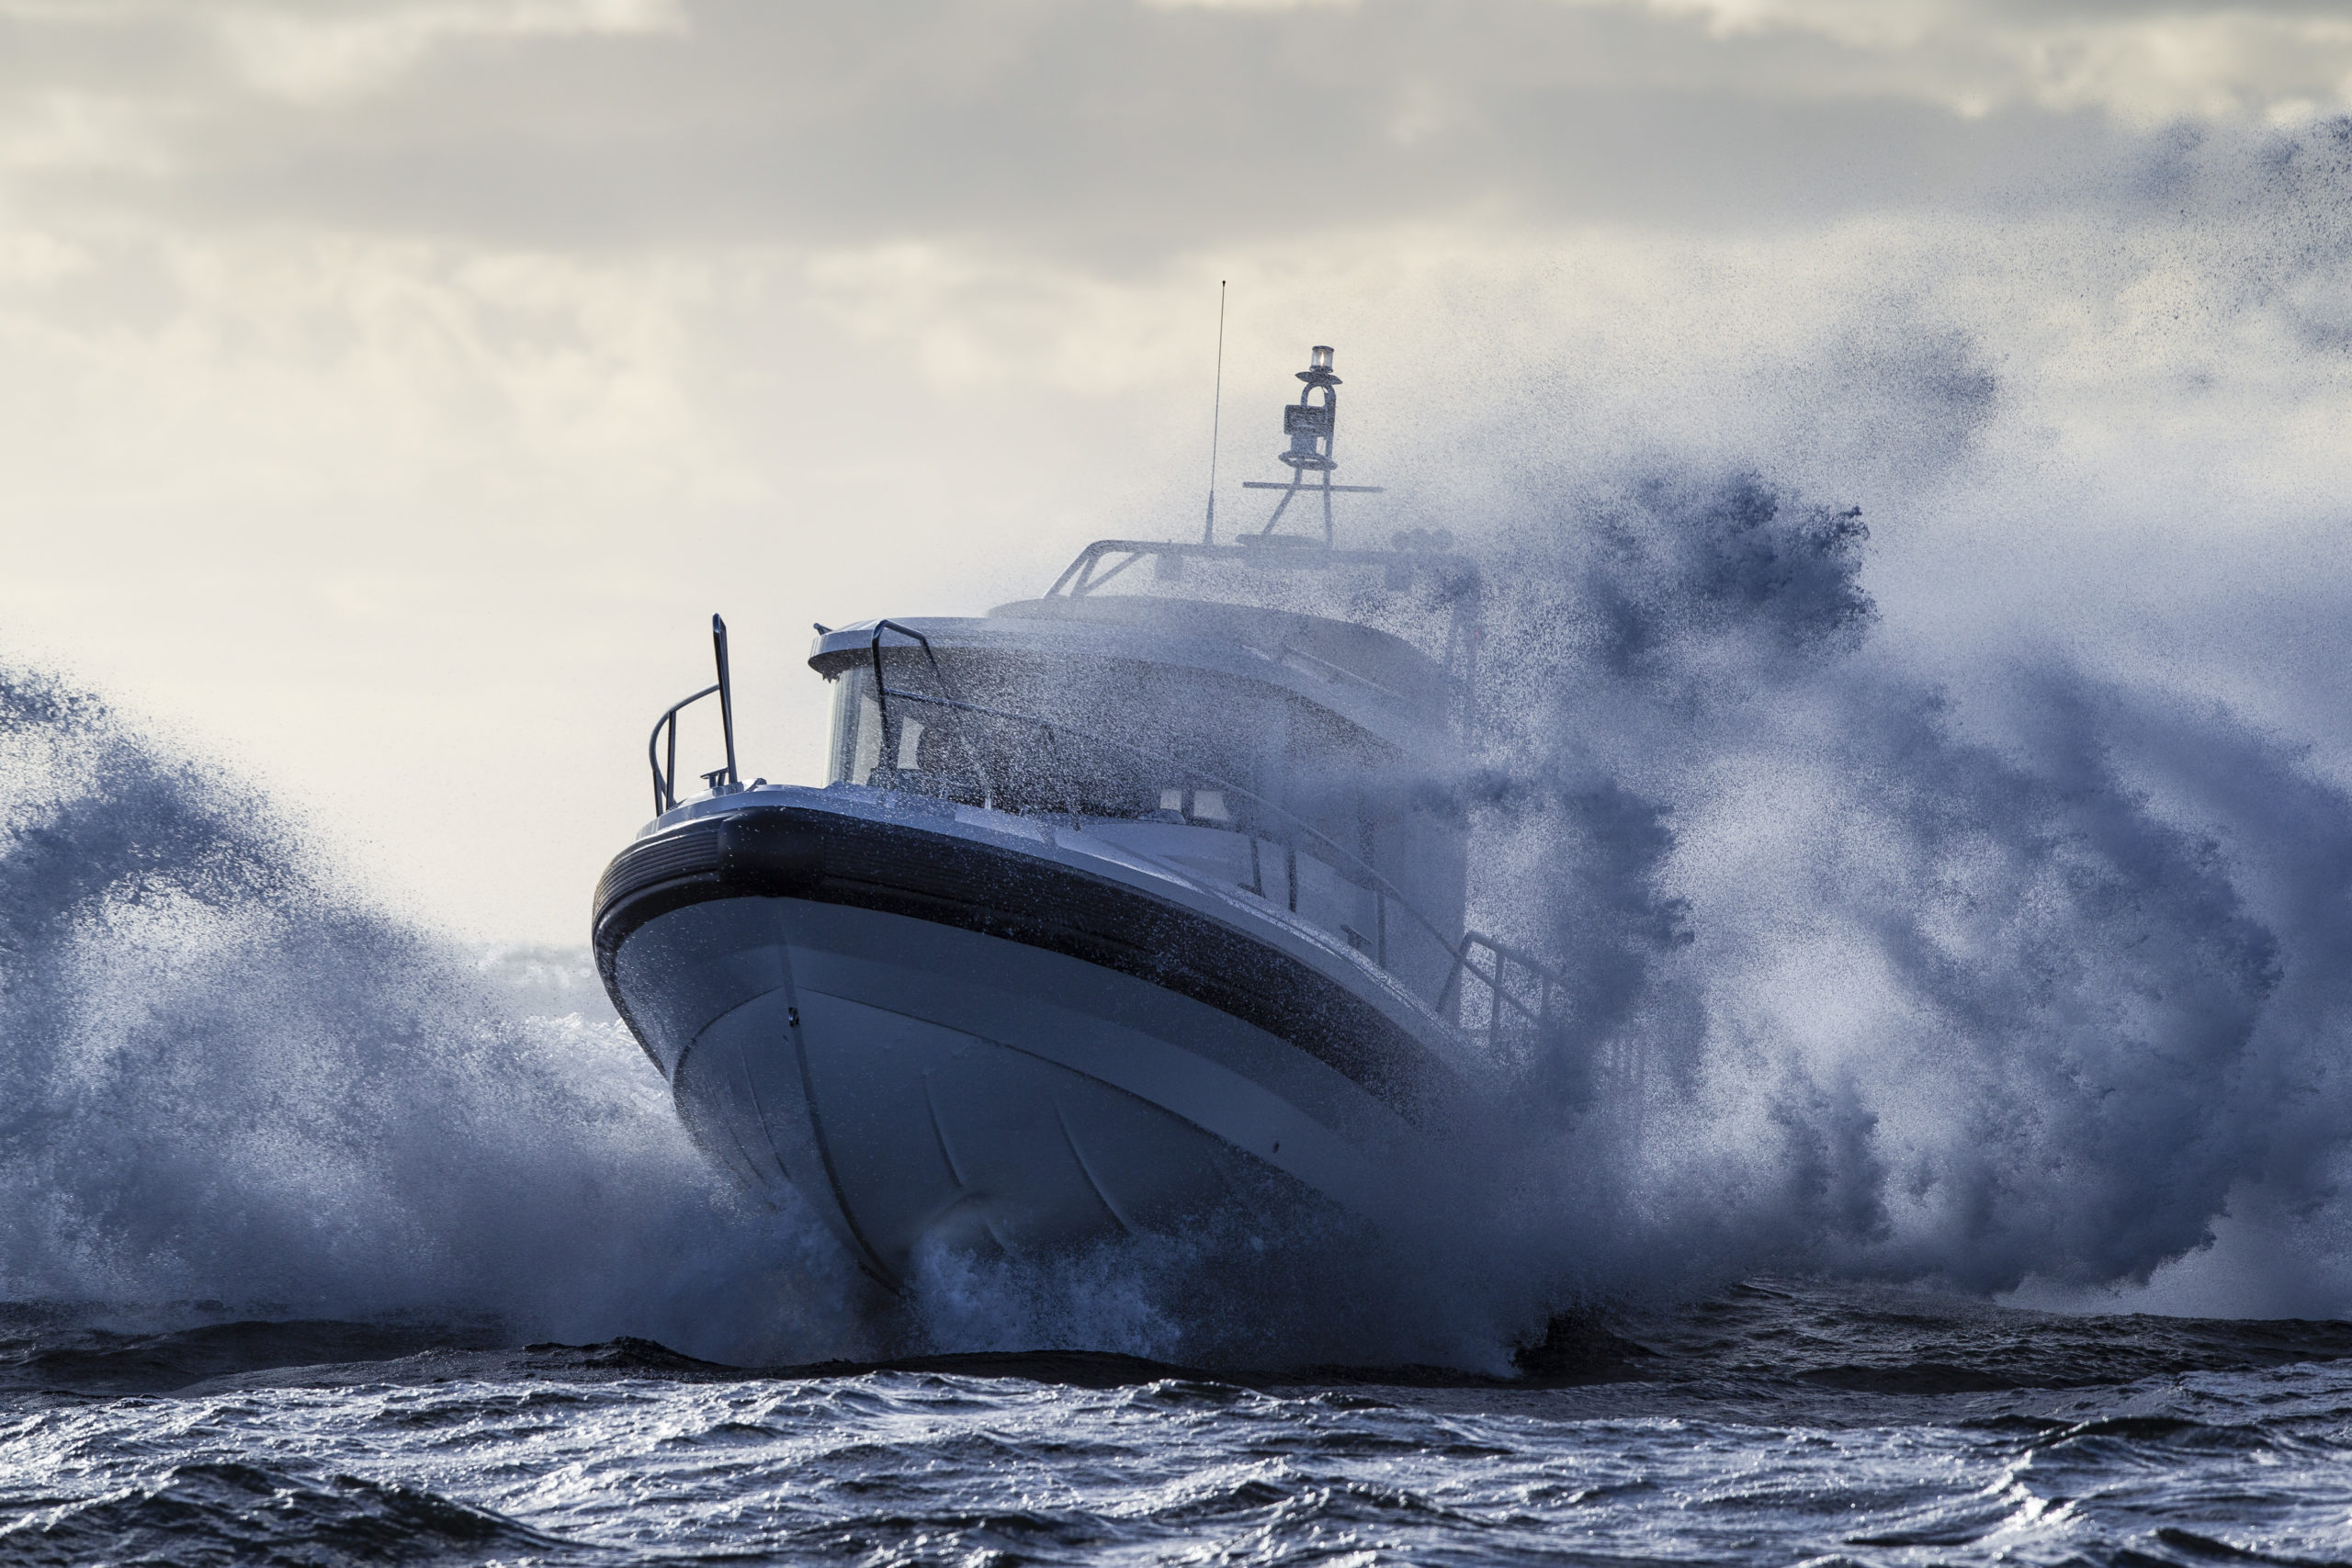 Paragon Yacht in action on the sea